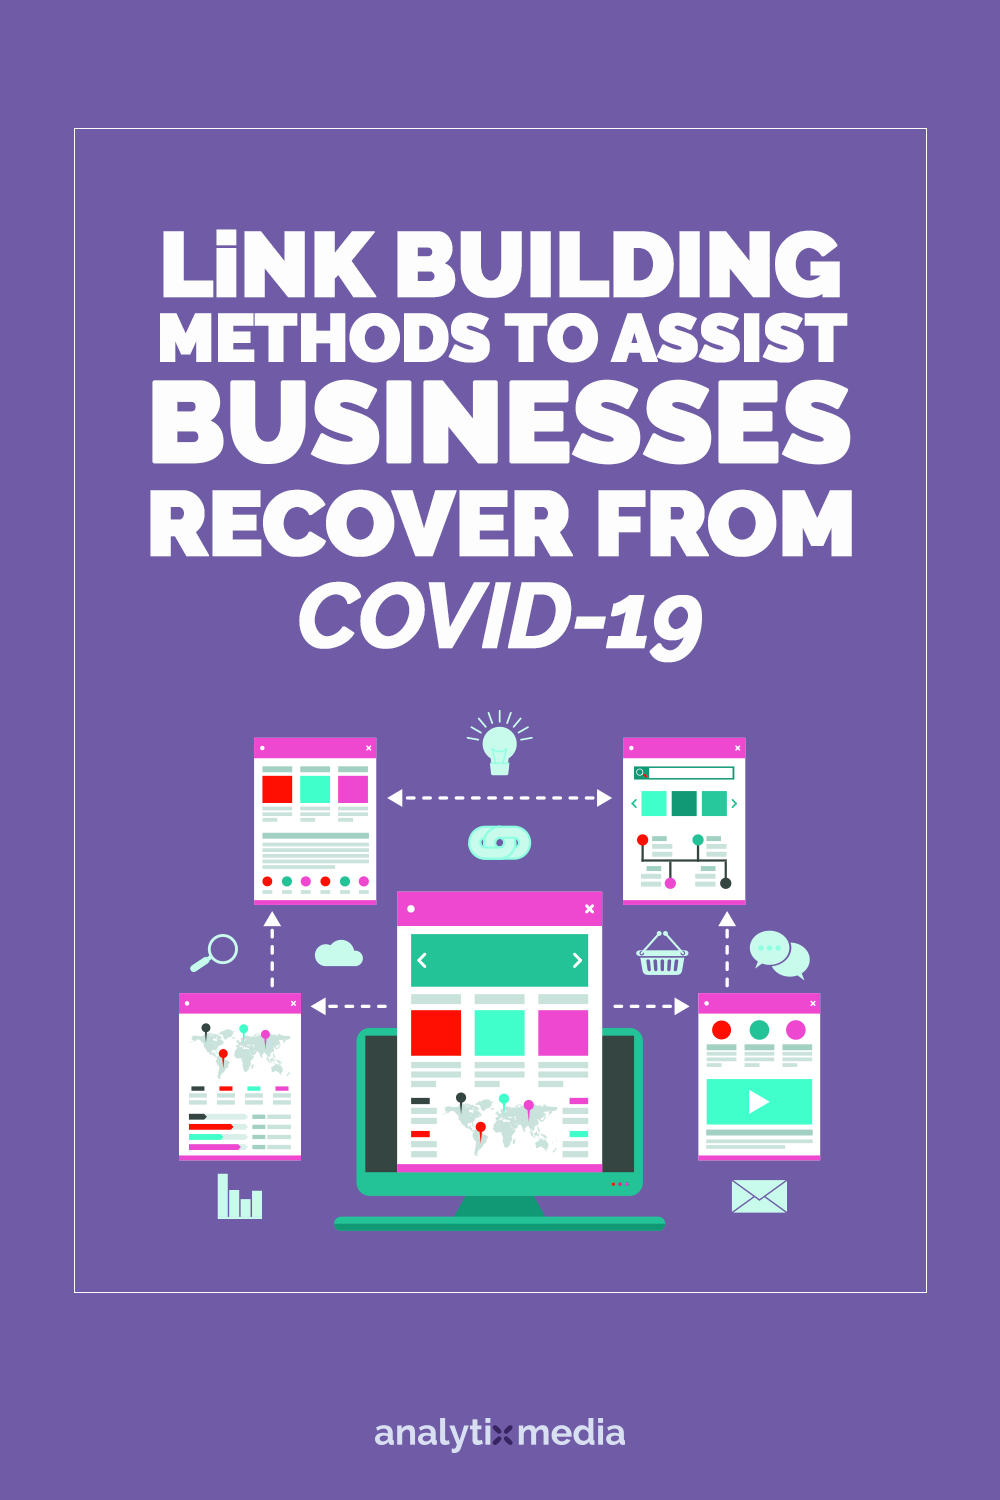 Link building methods to assist businesses recover from COVID-19 impact.